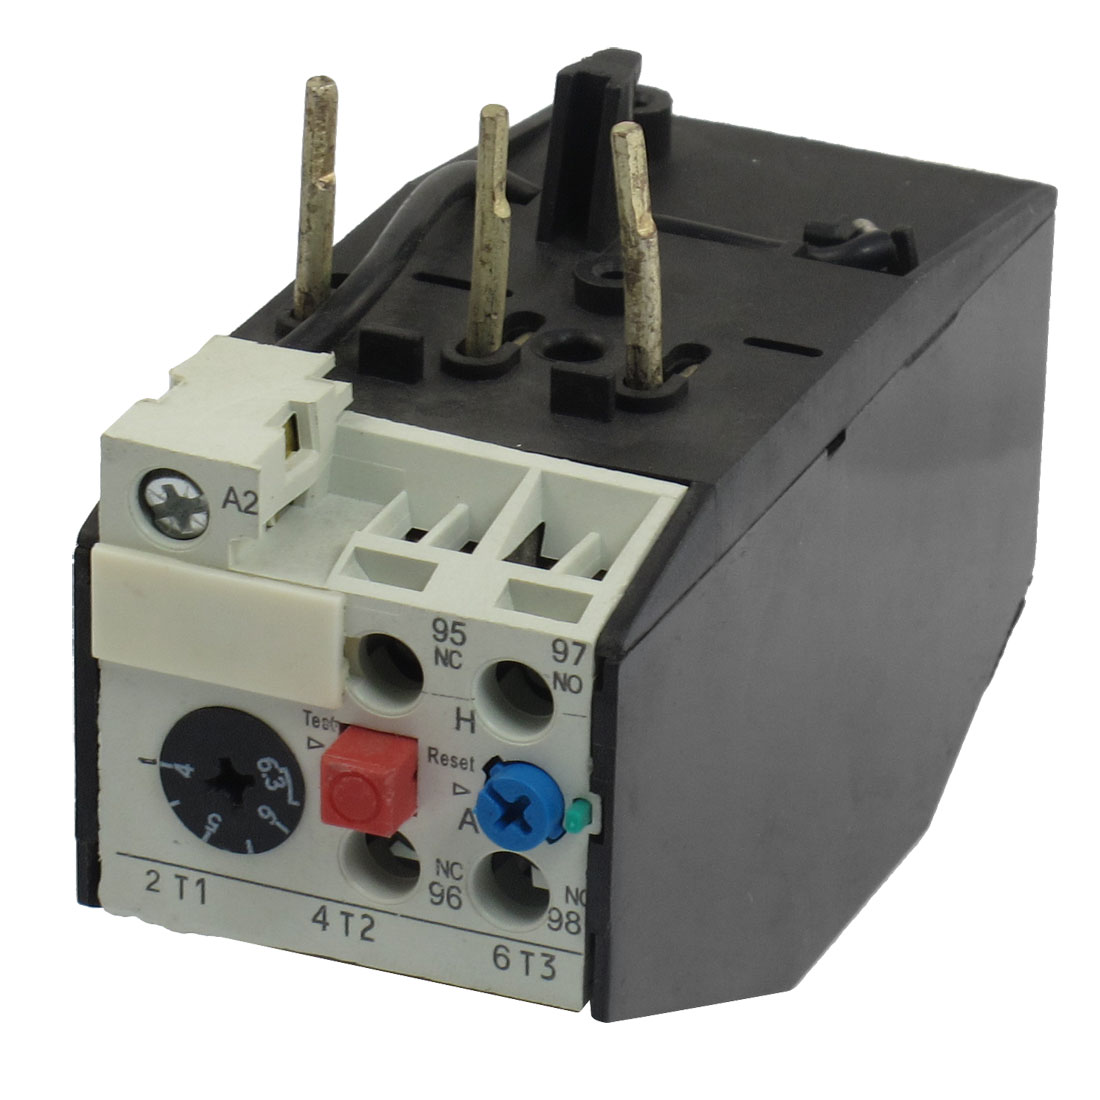 JRS2-32 6.3A 3 Pole 4-6.3A Current Range Motor Thermal Overload Relays